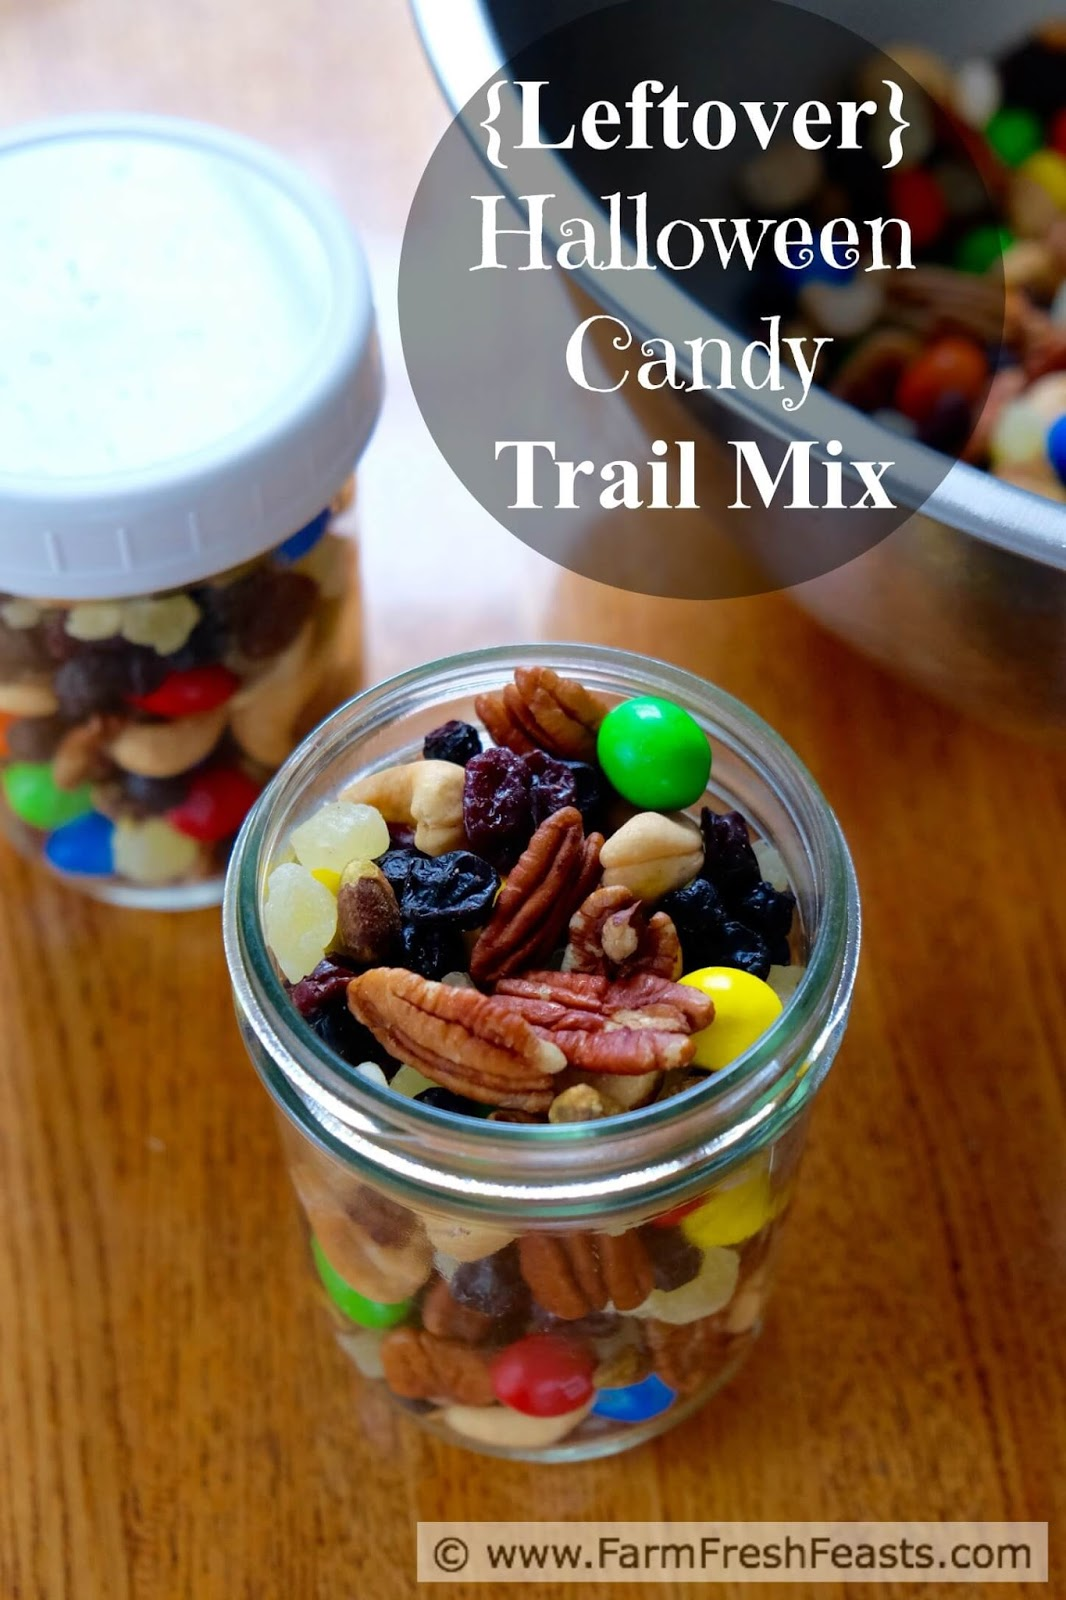 farm fresh feasts: trail mix with leftover halloween candy for